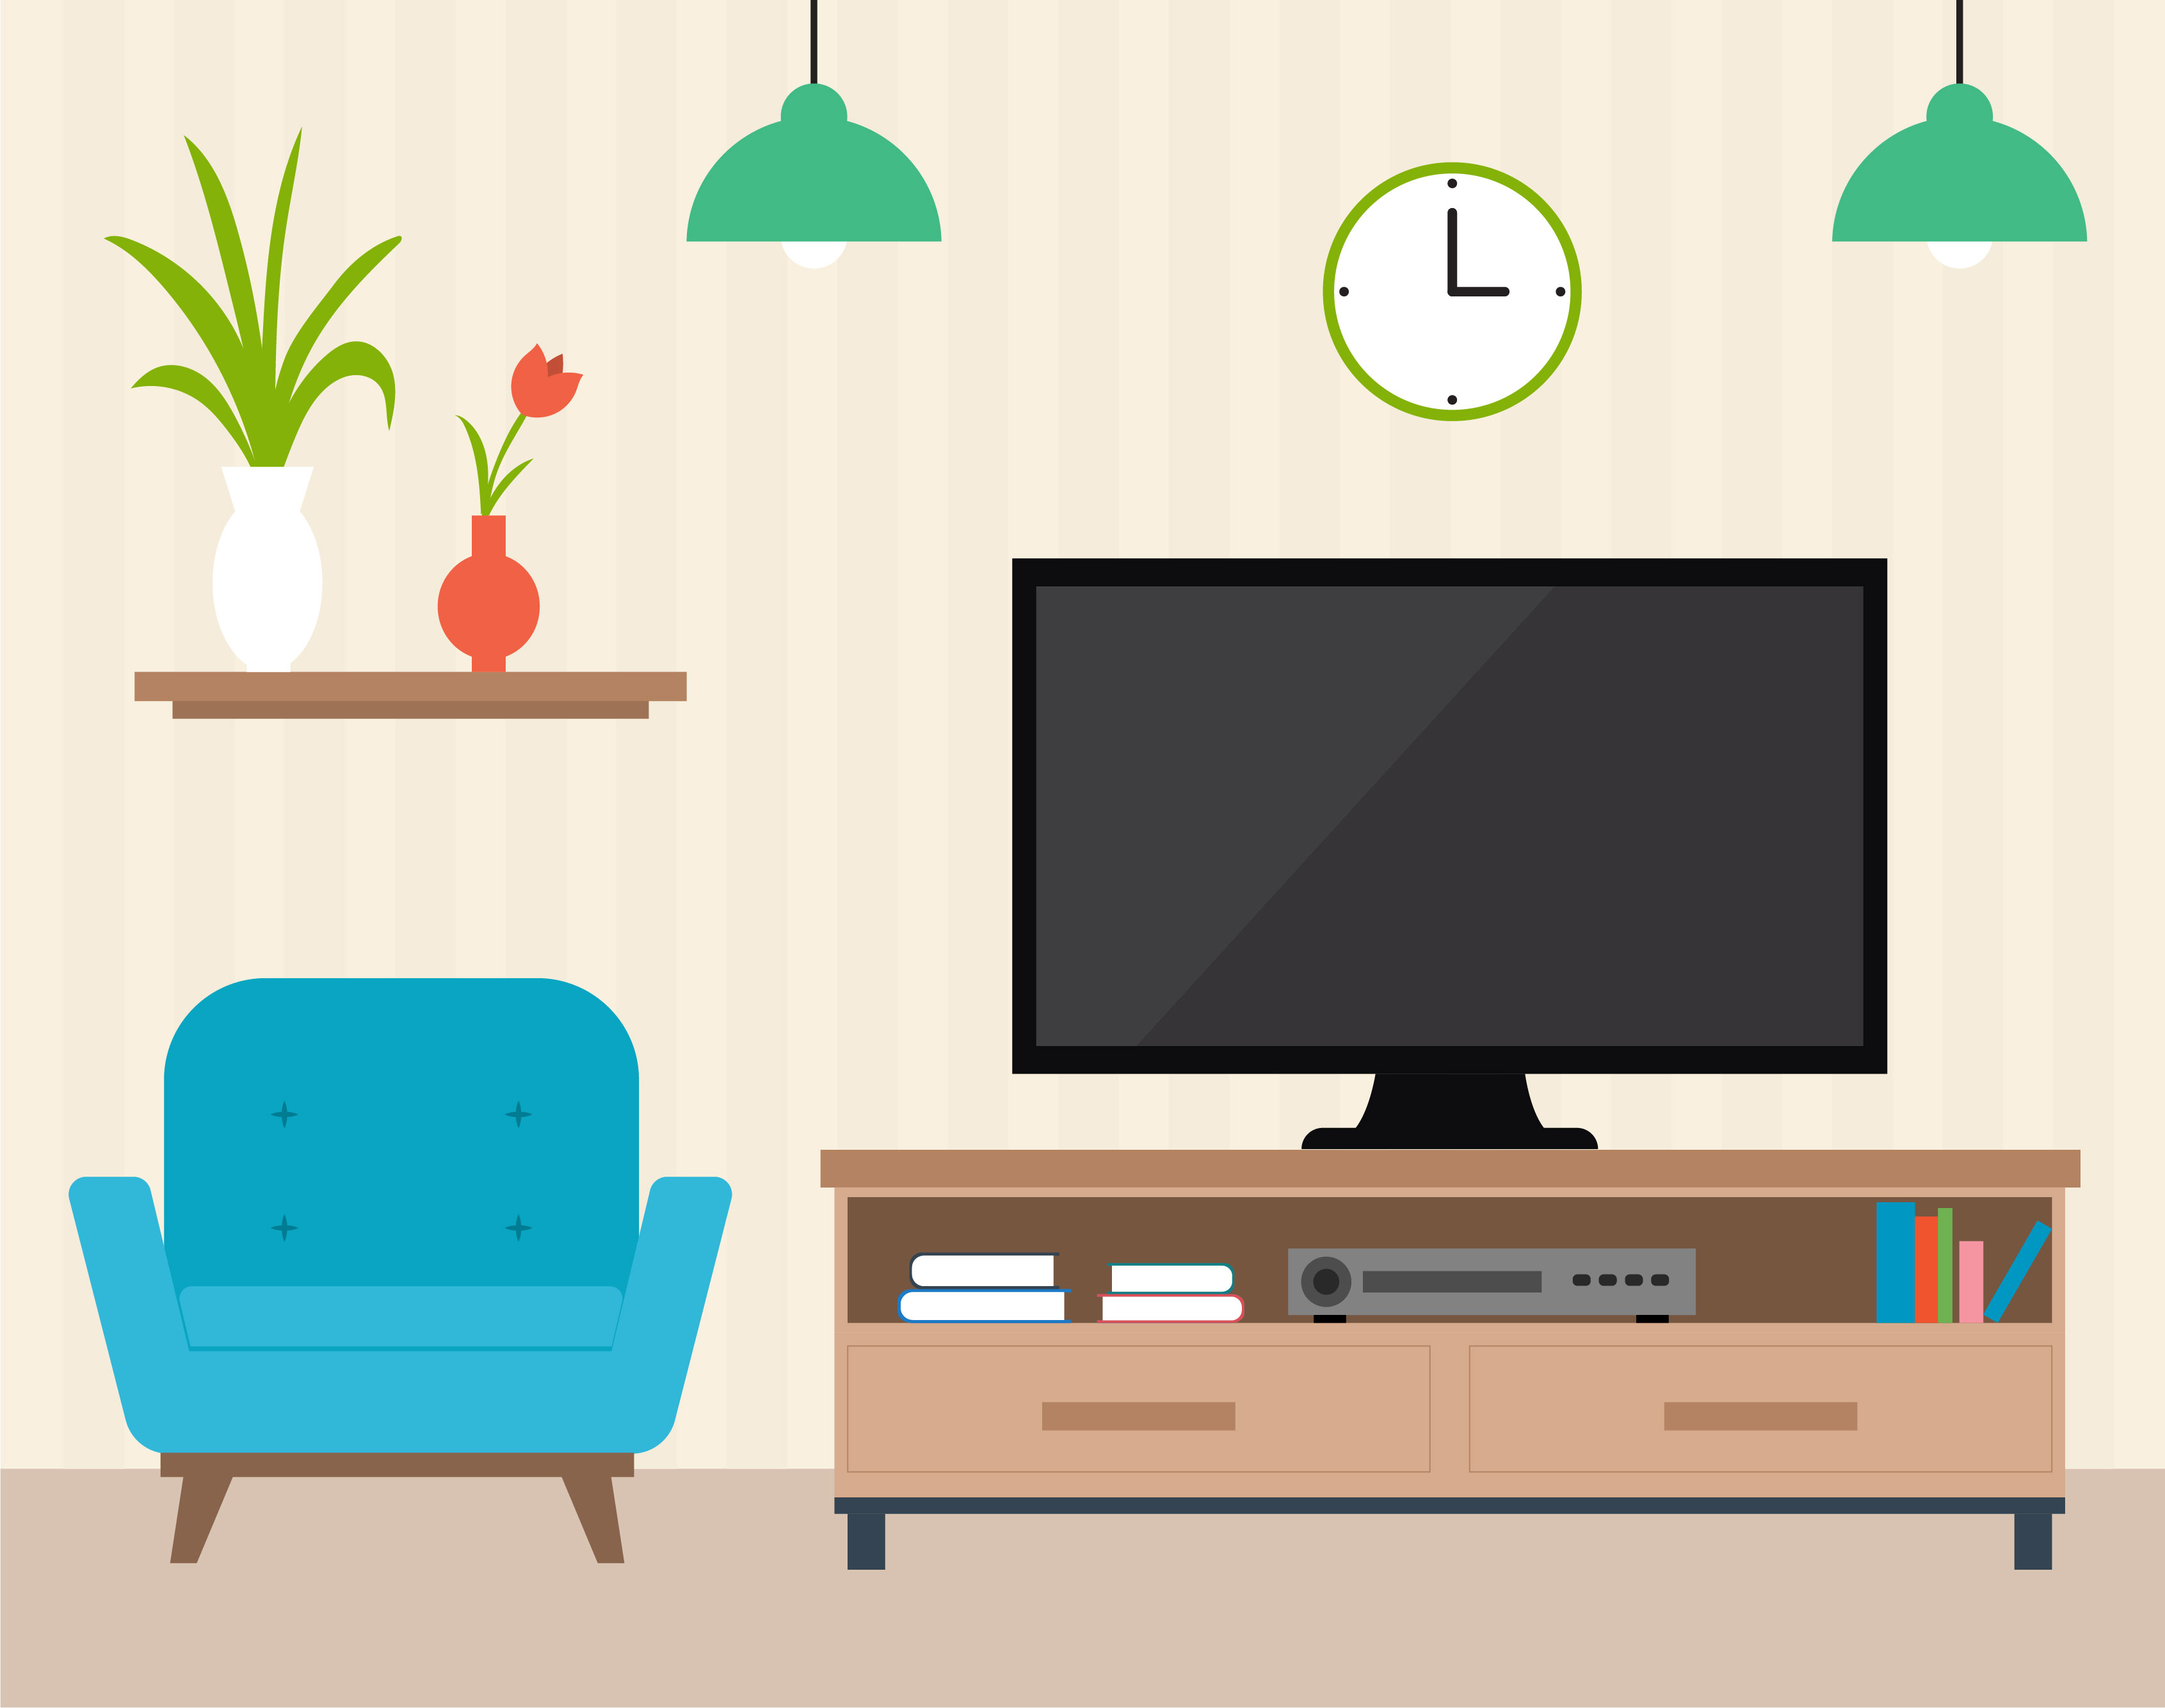 Flat design vector room design illustration download for Room design vector